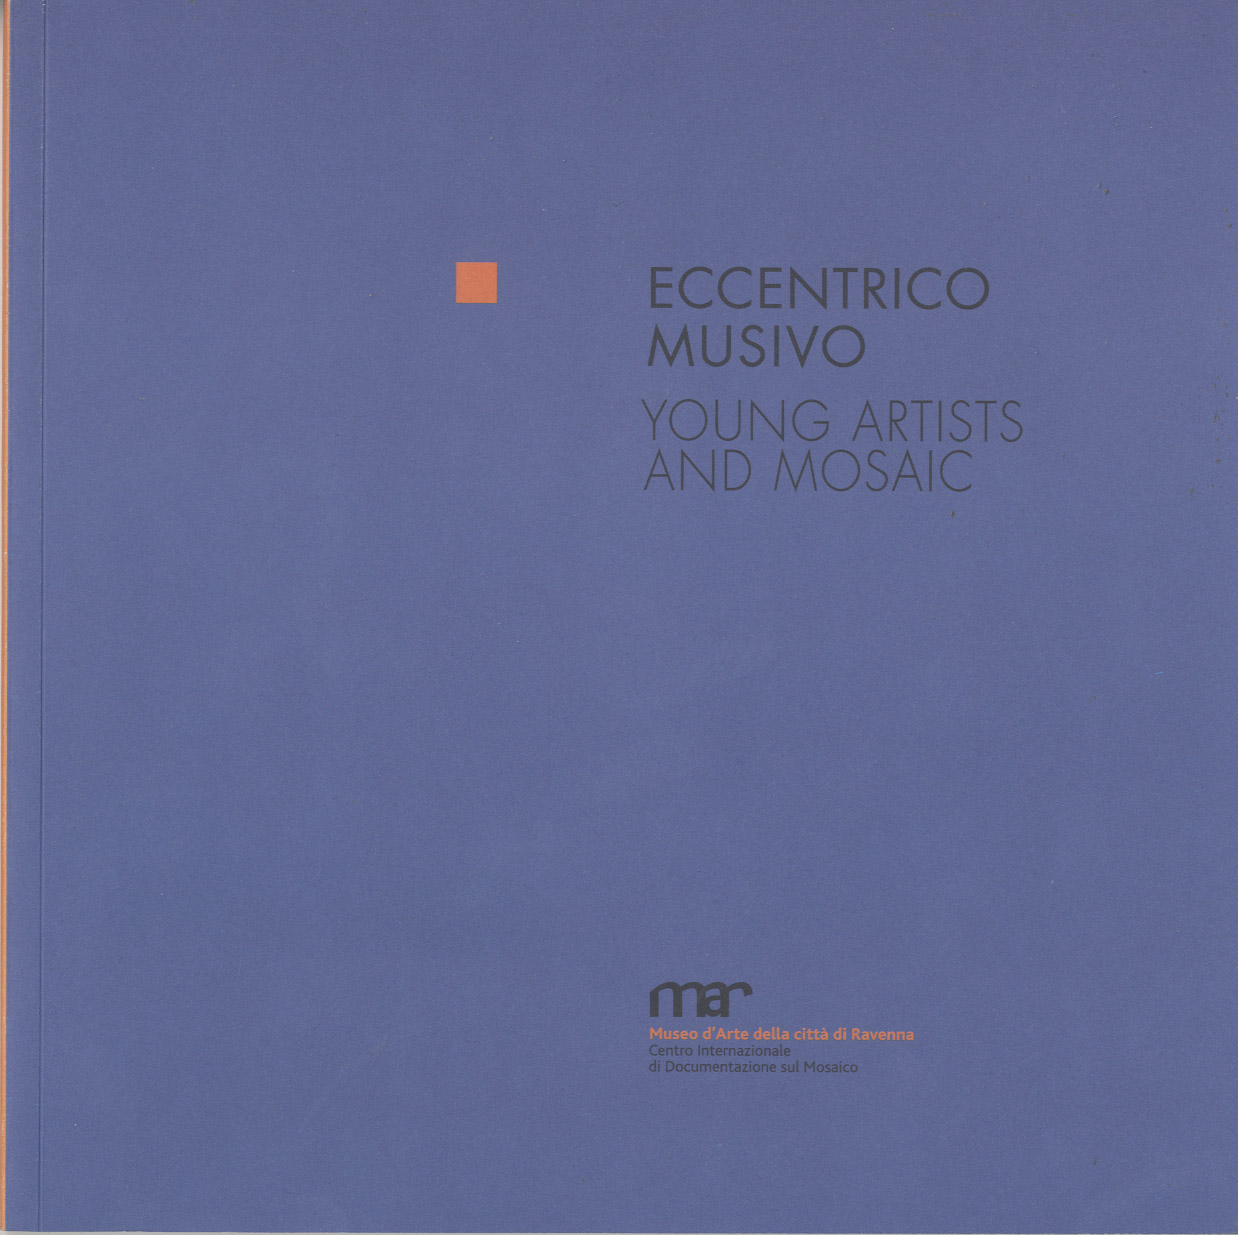 Eccentrico Musivo. Young artists and mosaics